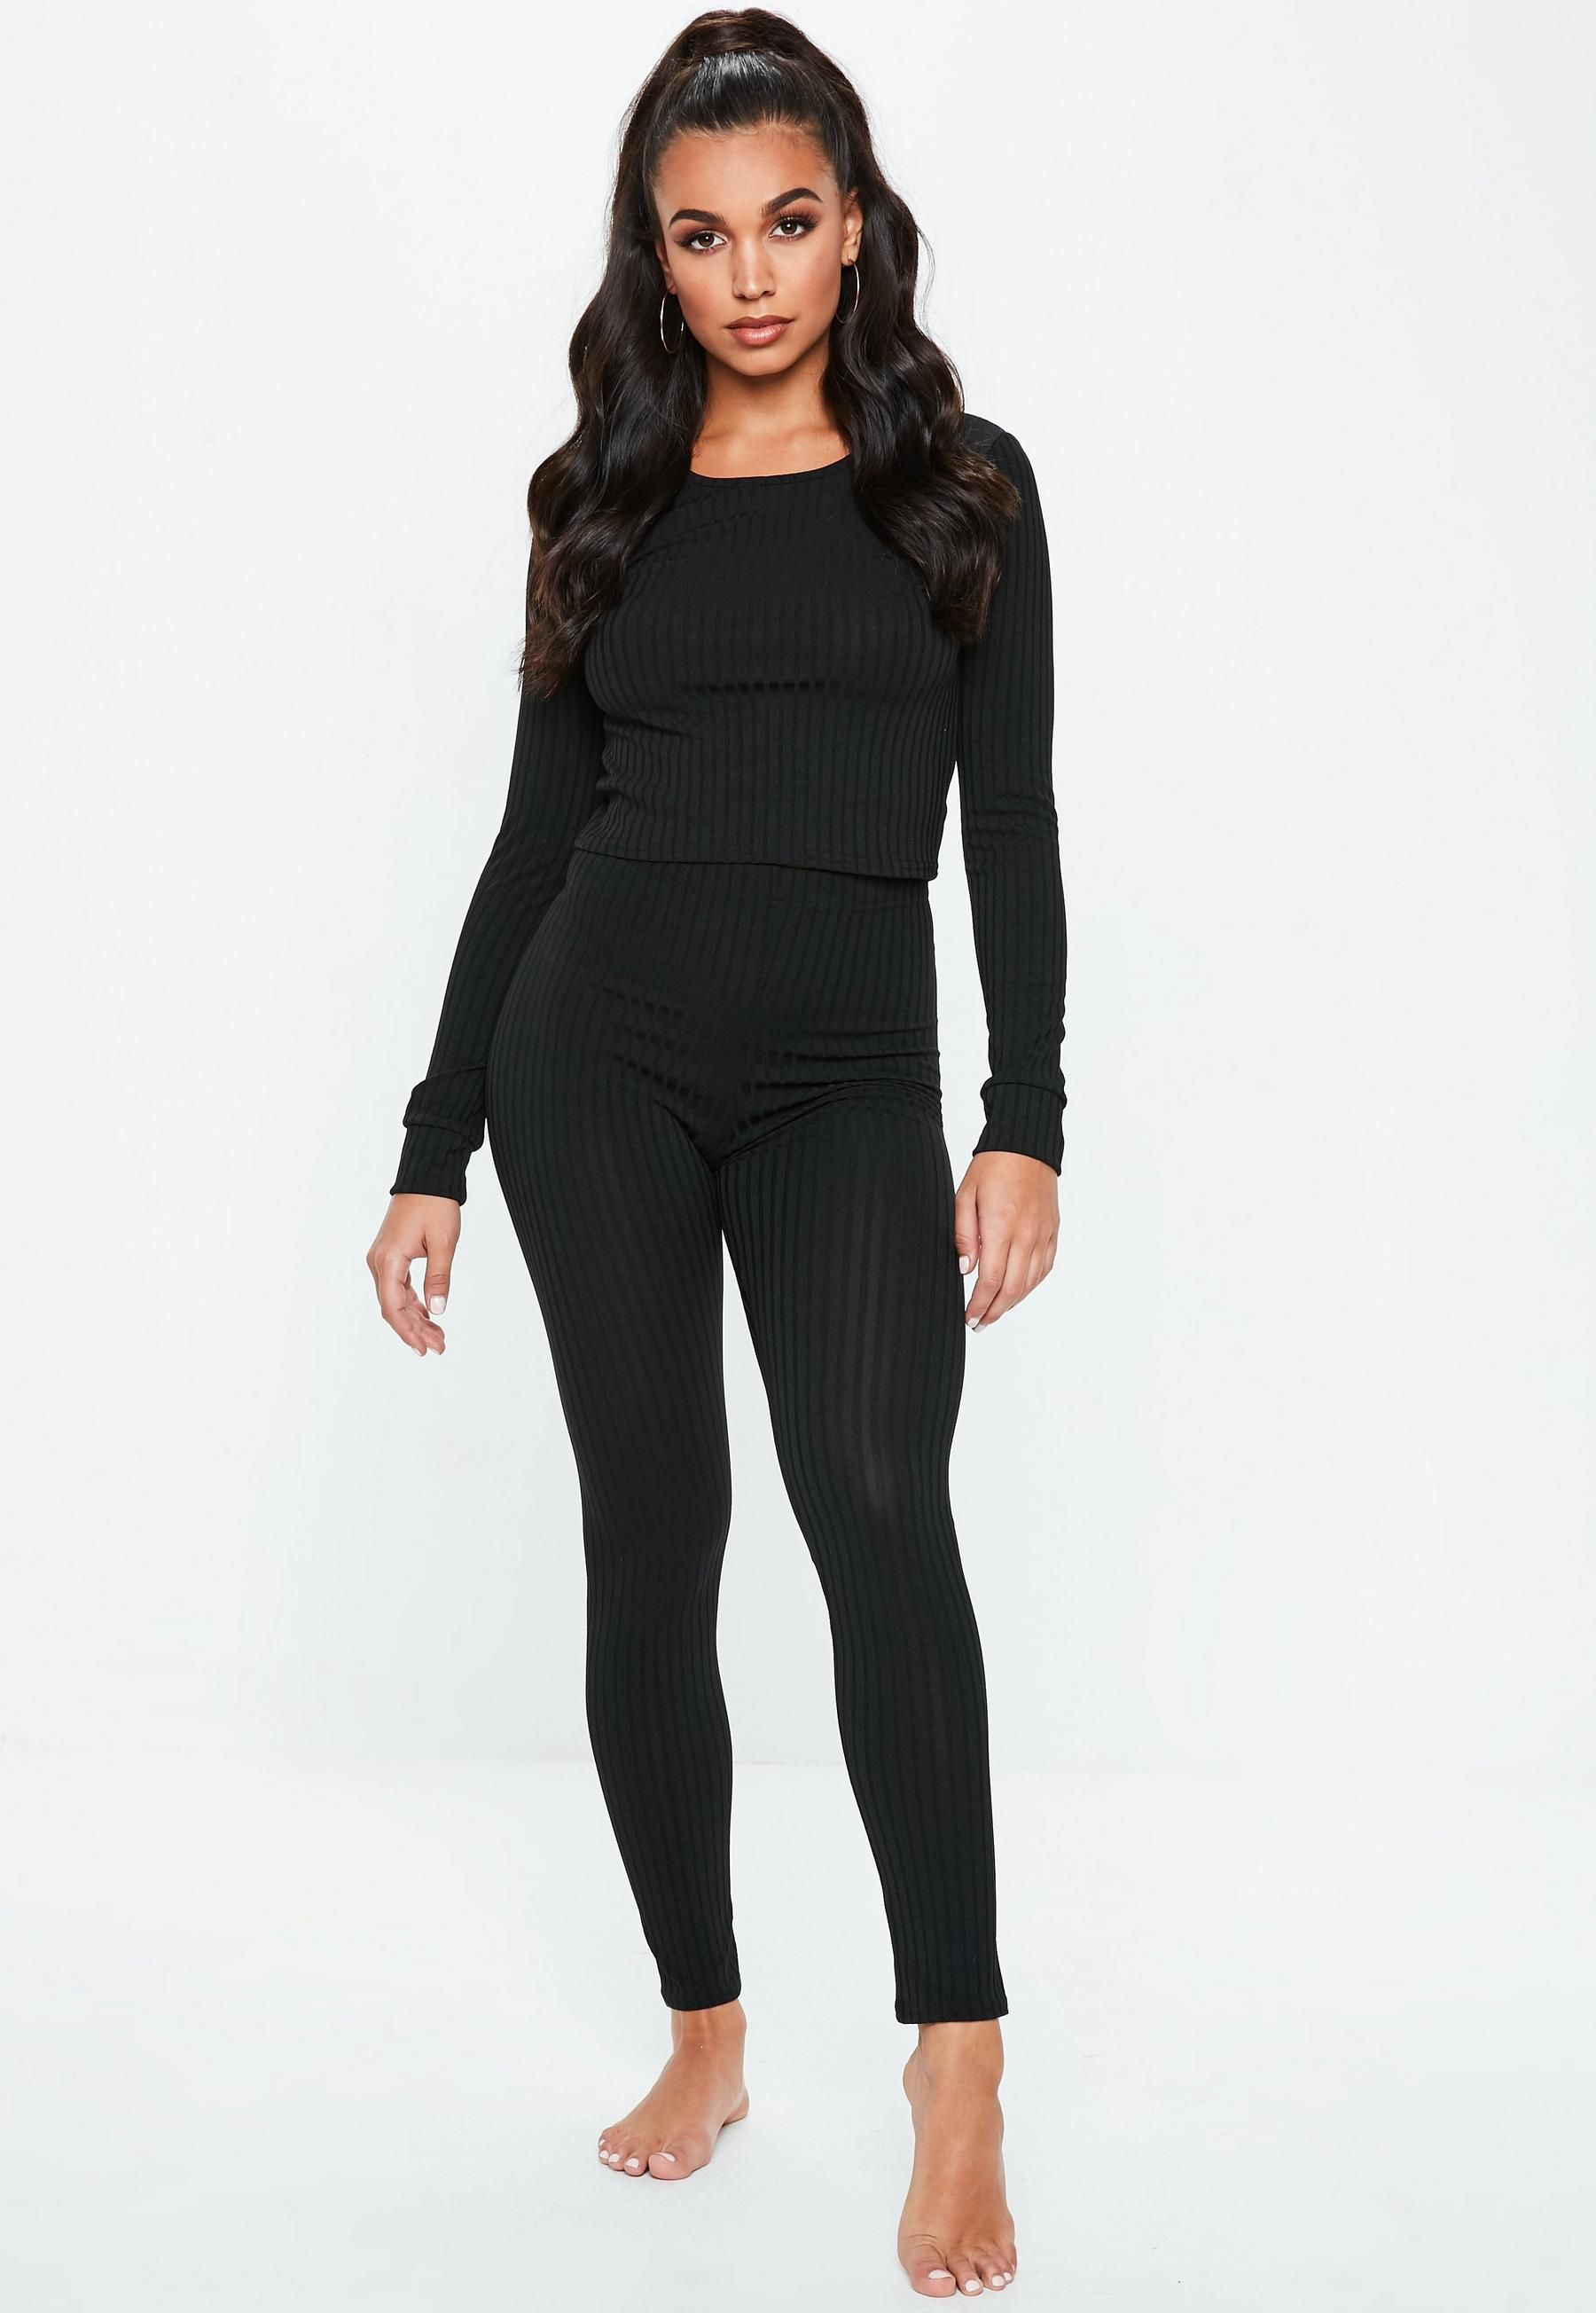 d1a75514291df Black Rib Mix And Match Leggings in 2019